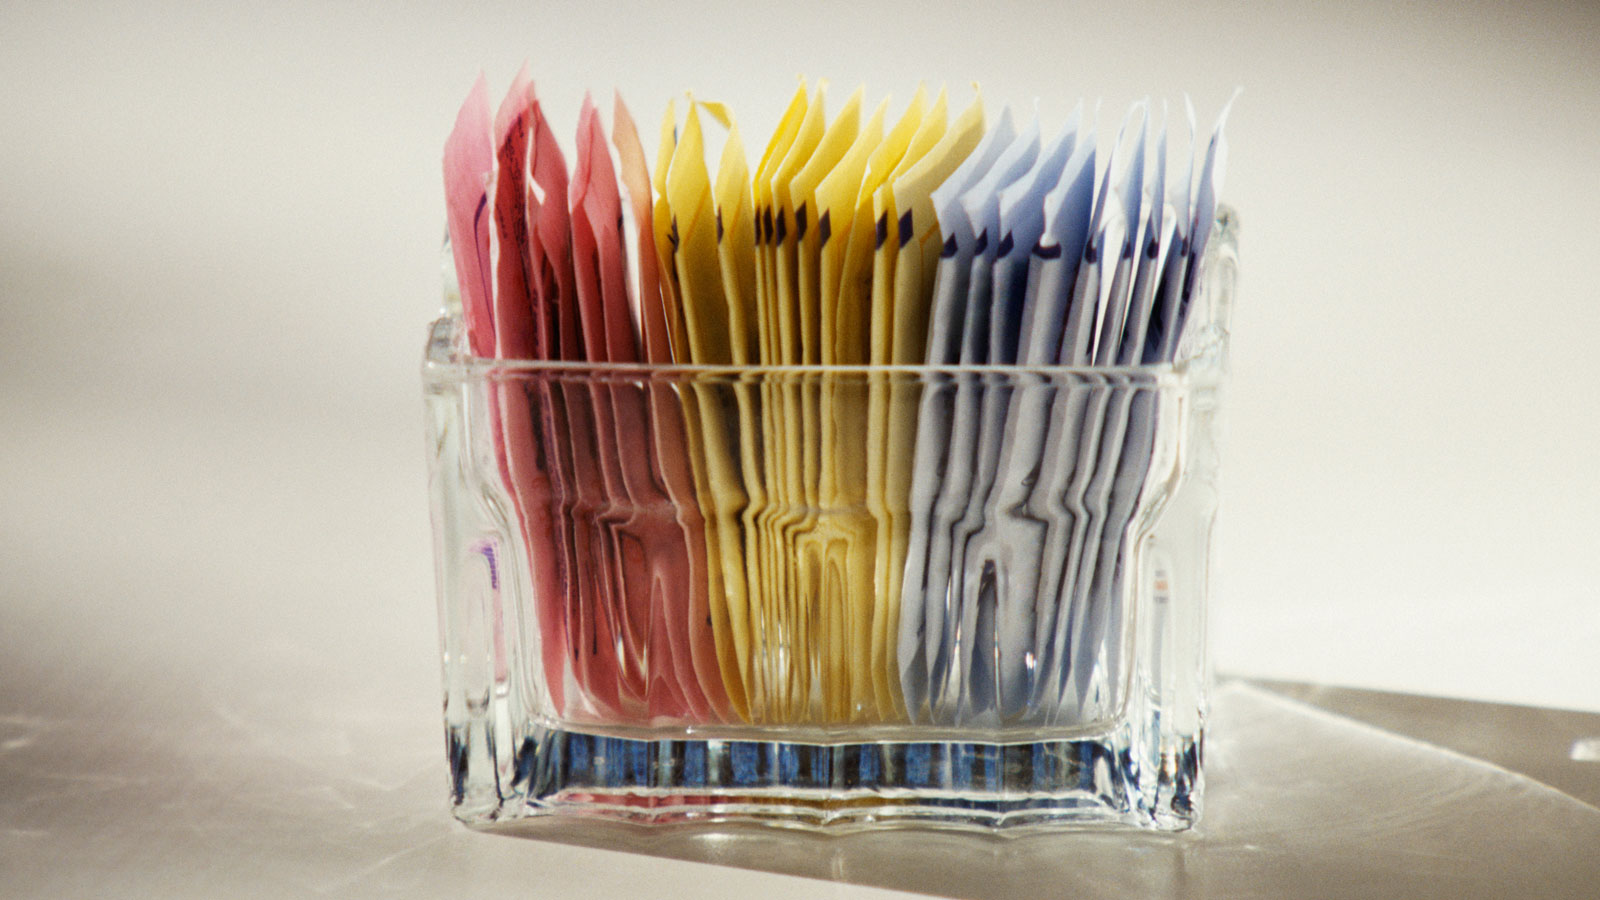 sugar-substitutes-packets-FT-blog0617.jpg